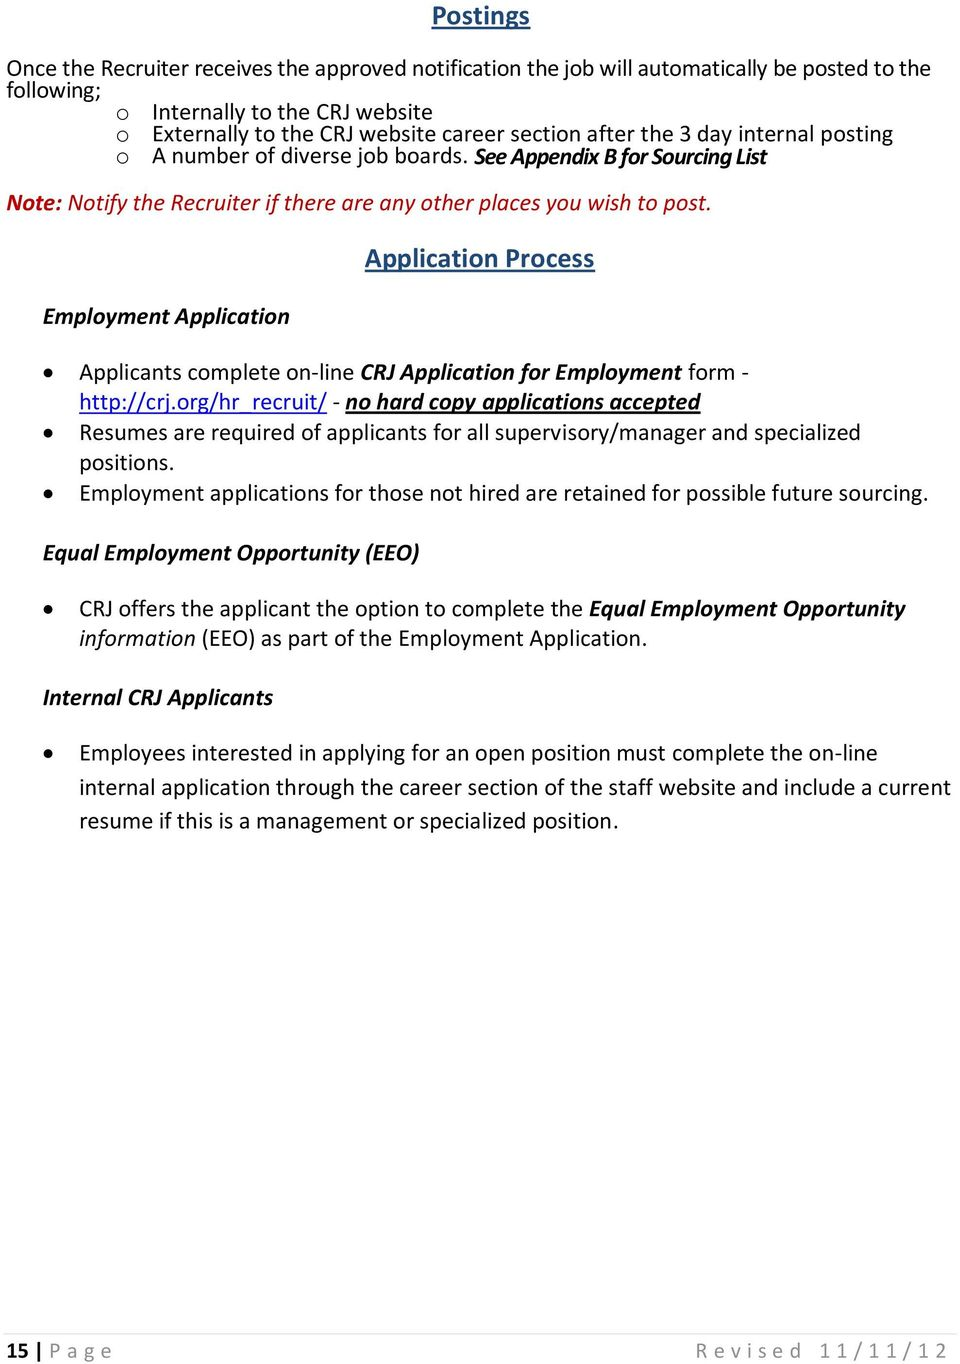 Employment Application Application Process Applicants complete on-line CRJ Application for Employment form - http://crj.